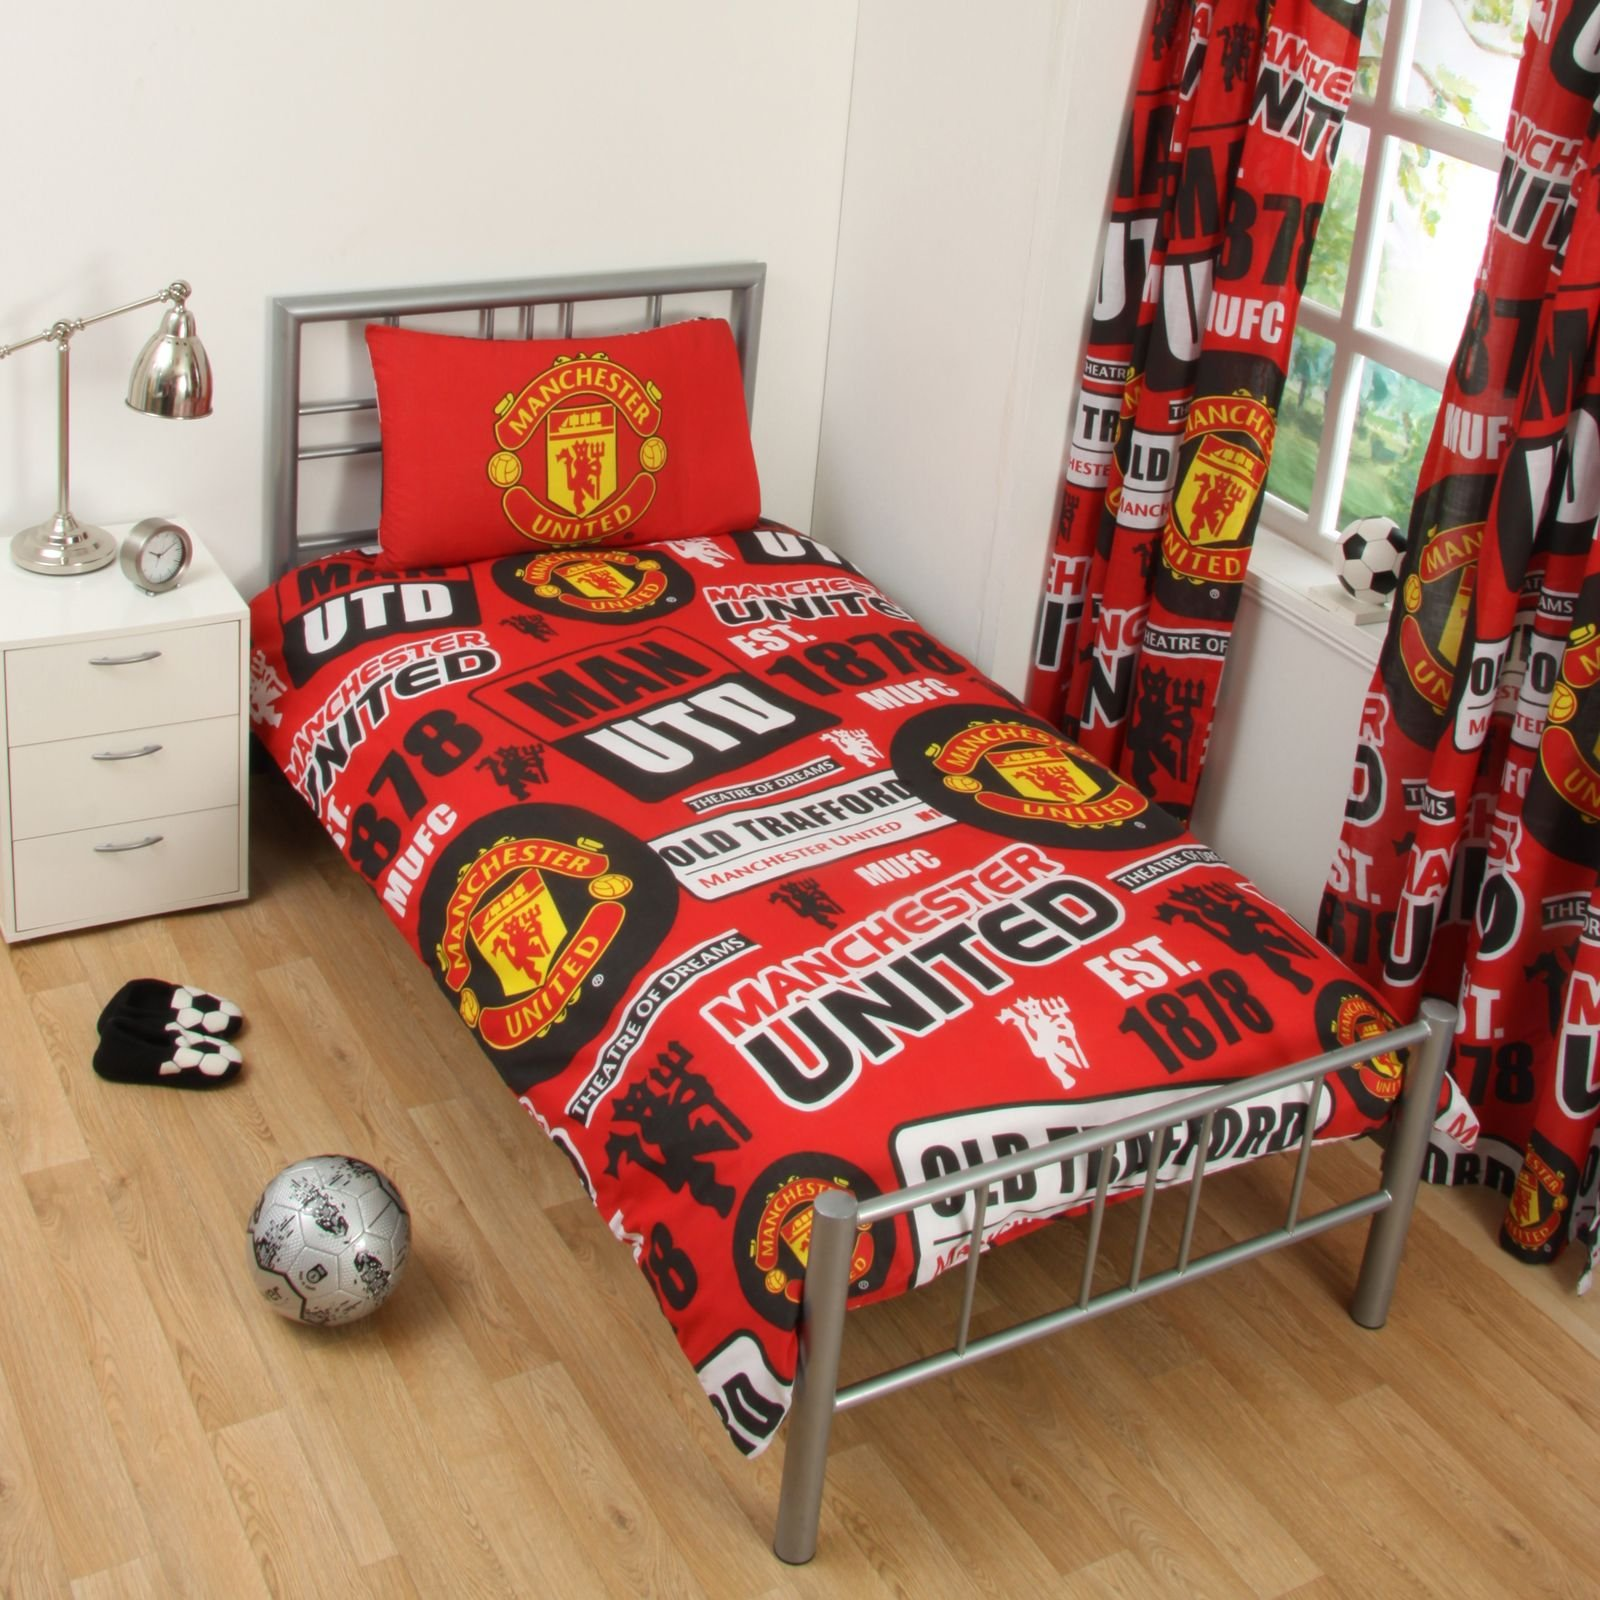 Manchester United FC Patch UK Single/ US Twin Duvet Cover and Pillowcase Set by Manchester United